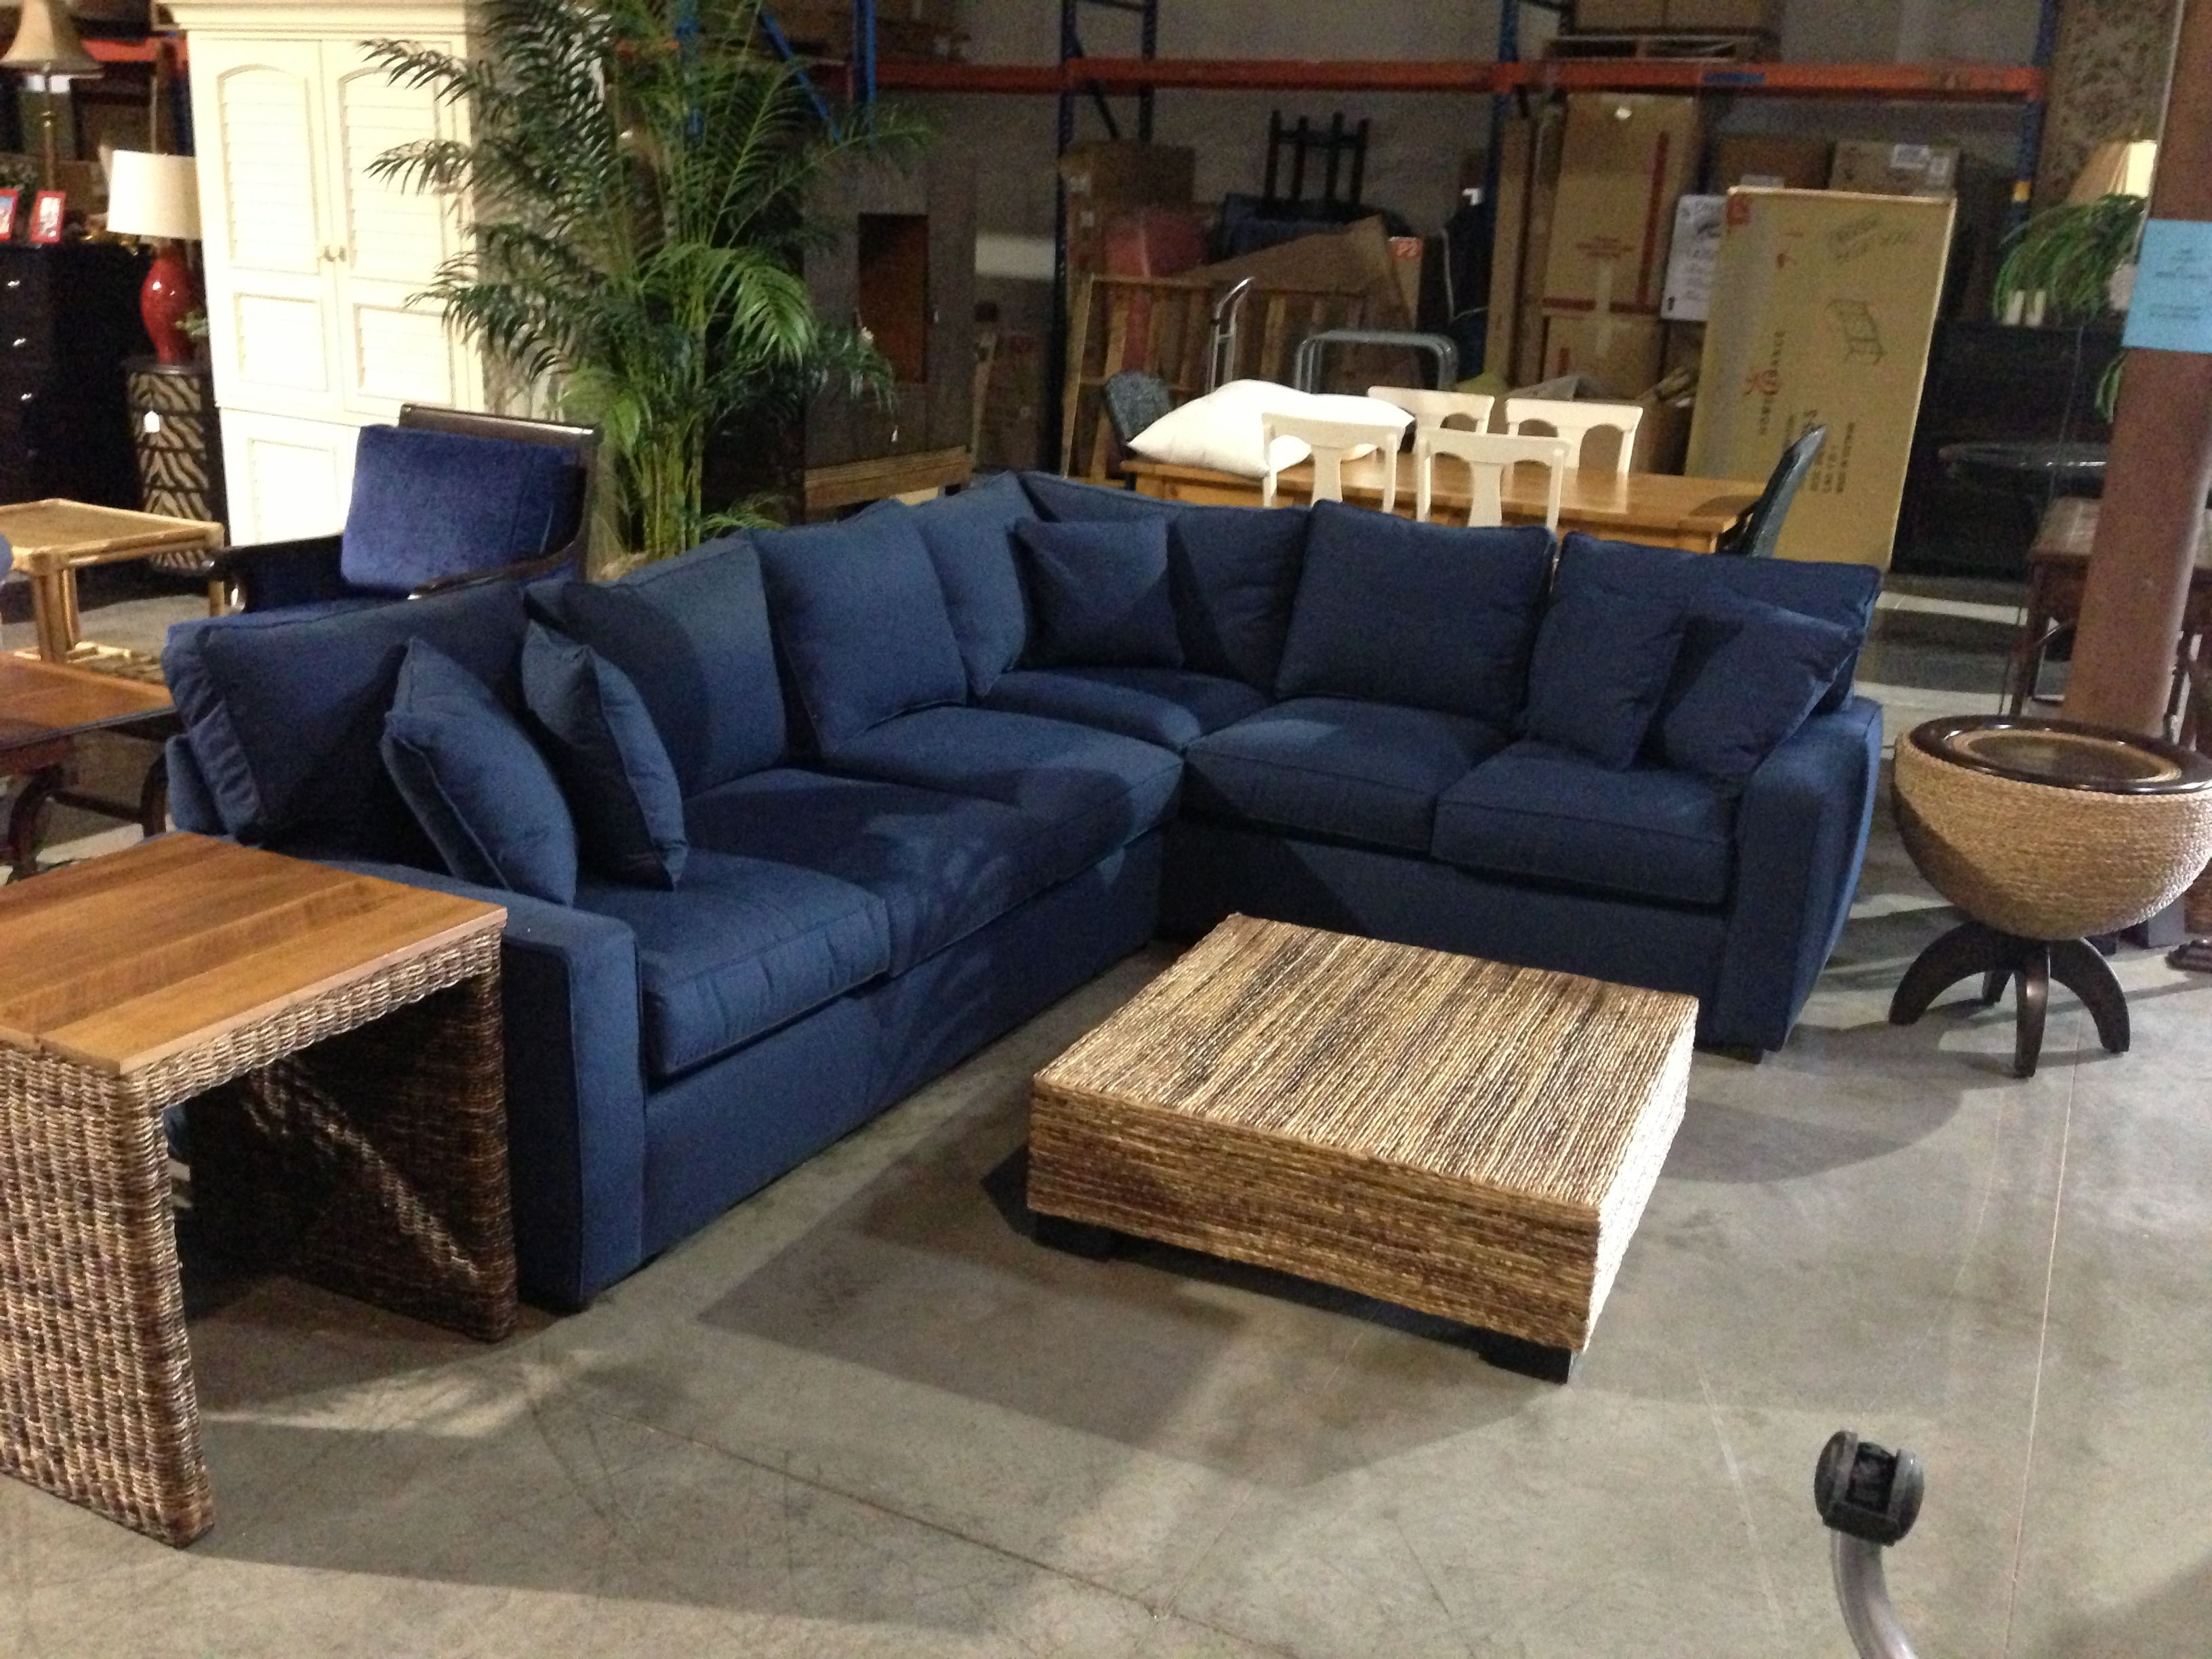 Blue Sectional Pin By Sofacouchs On Sofas Couches In 2019 Navy Blue Sofa